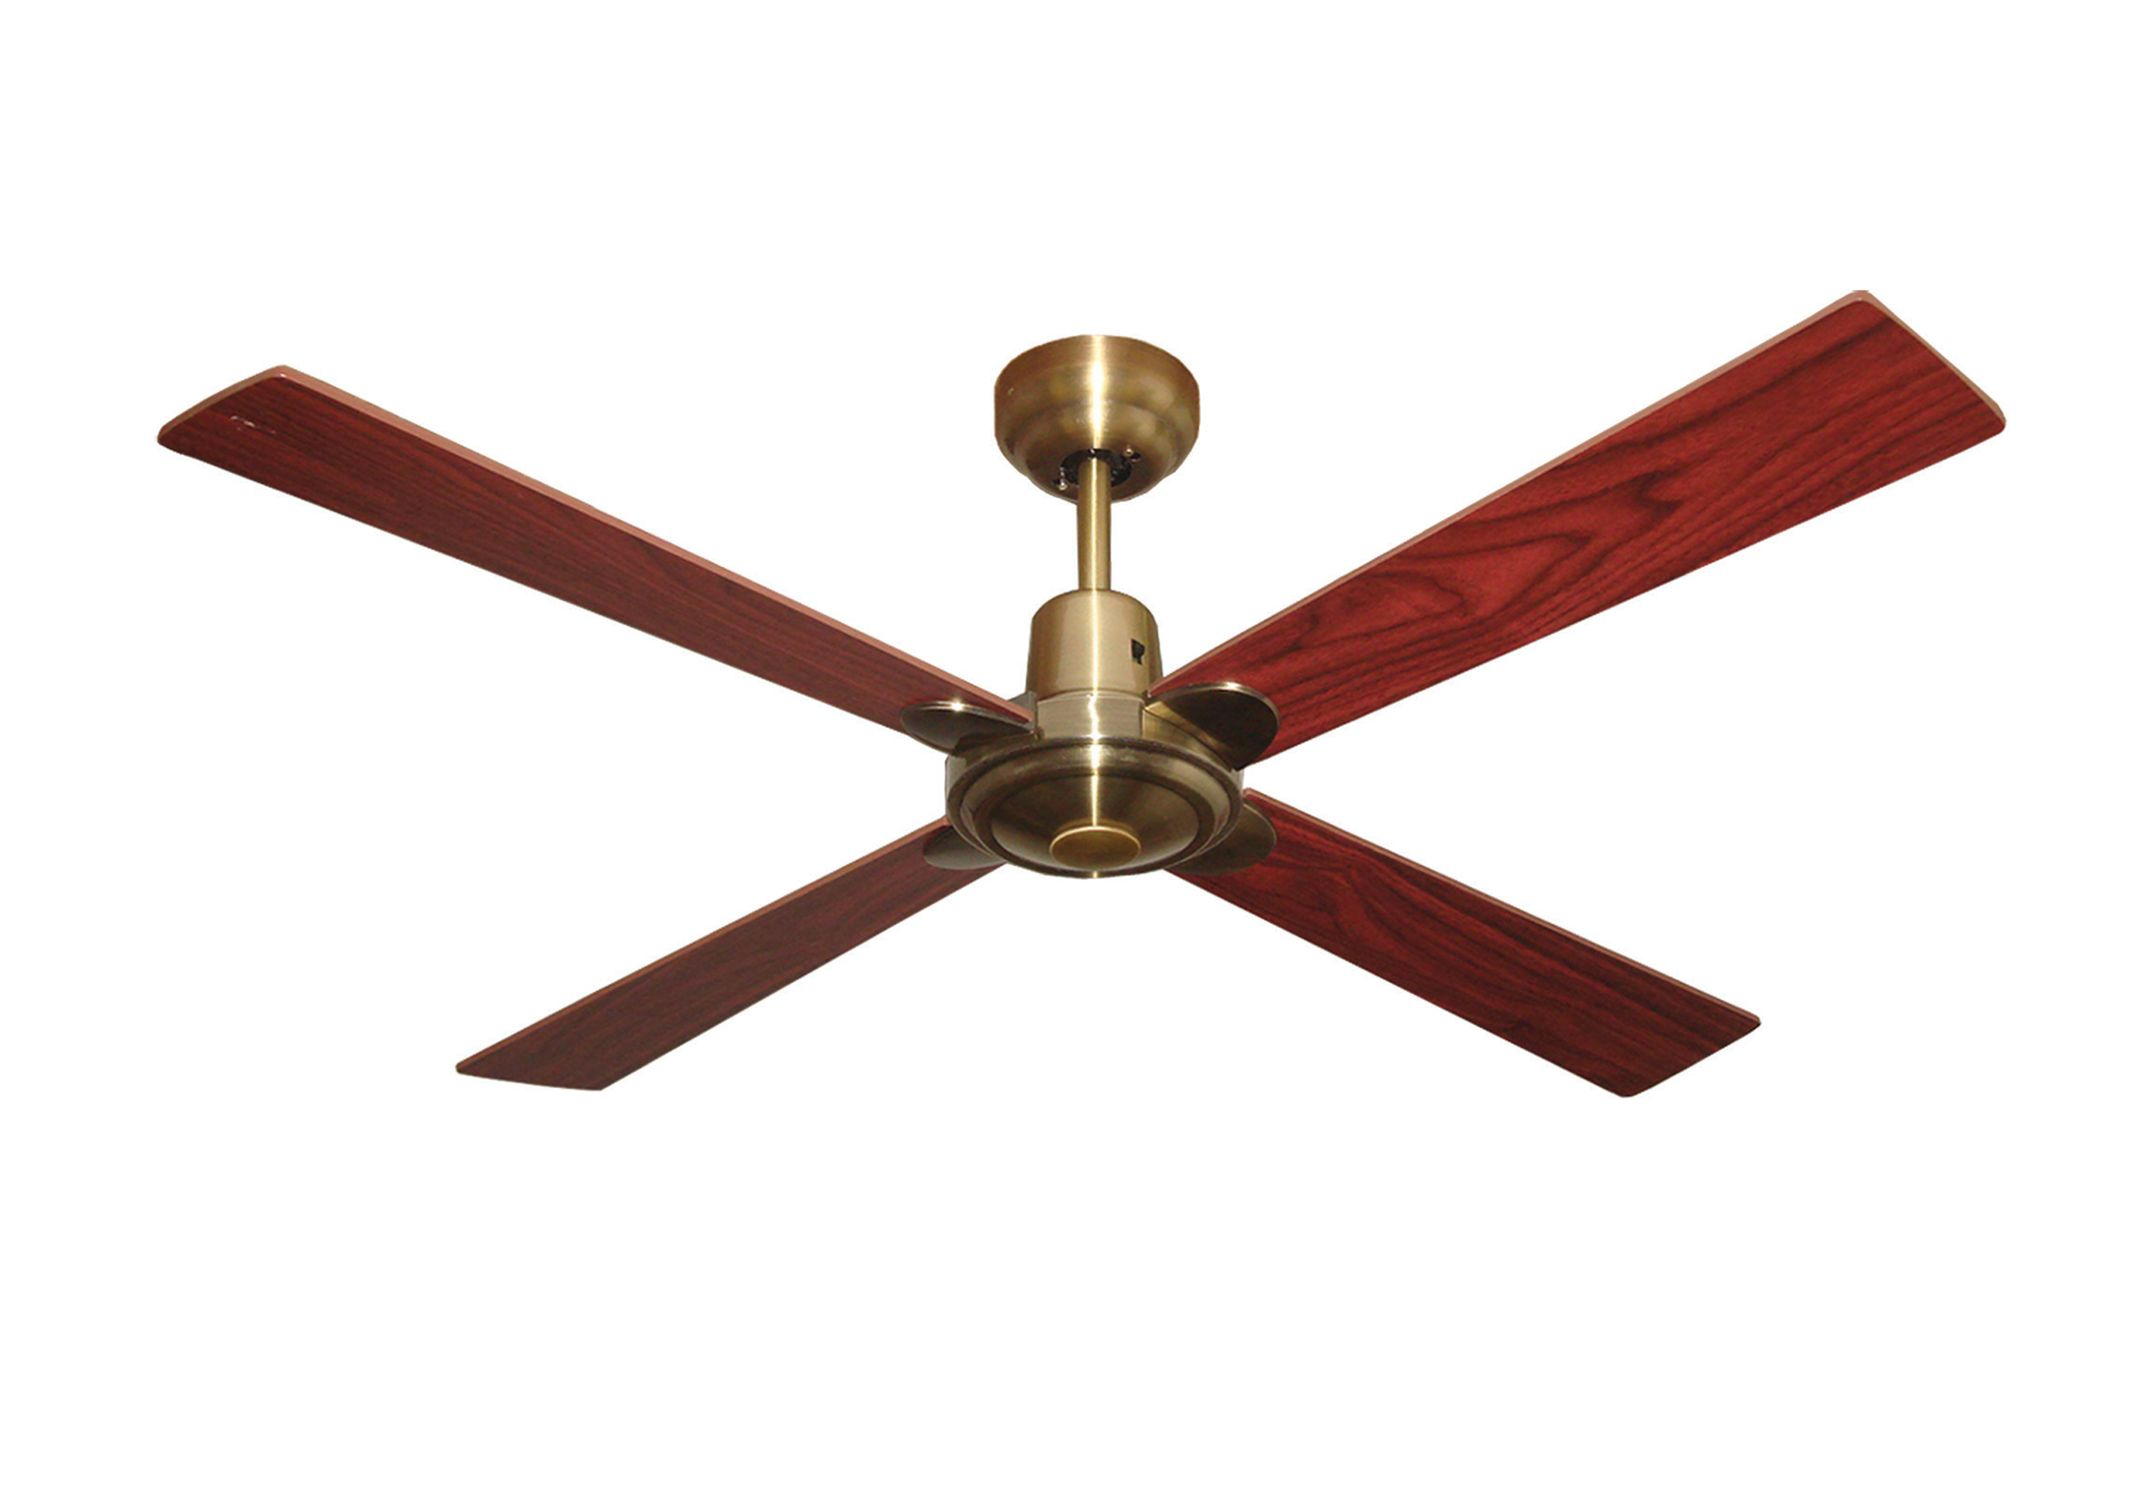 Vaxcel Fans 107cm Toledo 3 Blade Ceiling Fan with Remote & Reviews